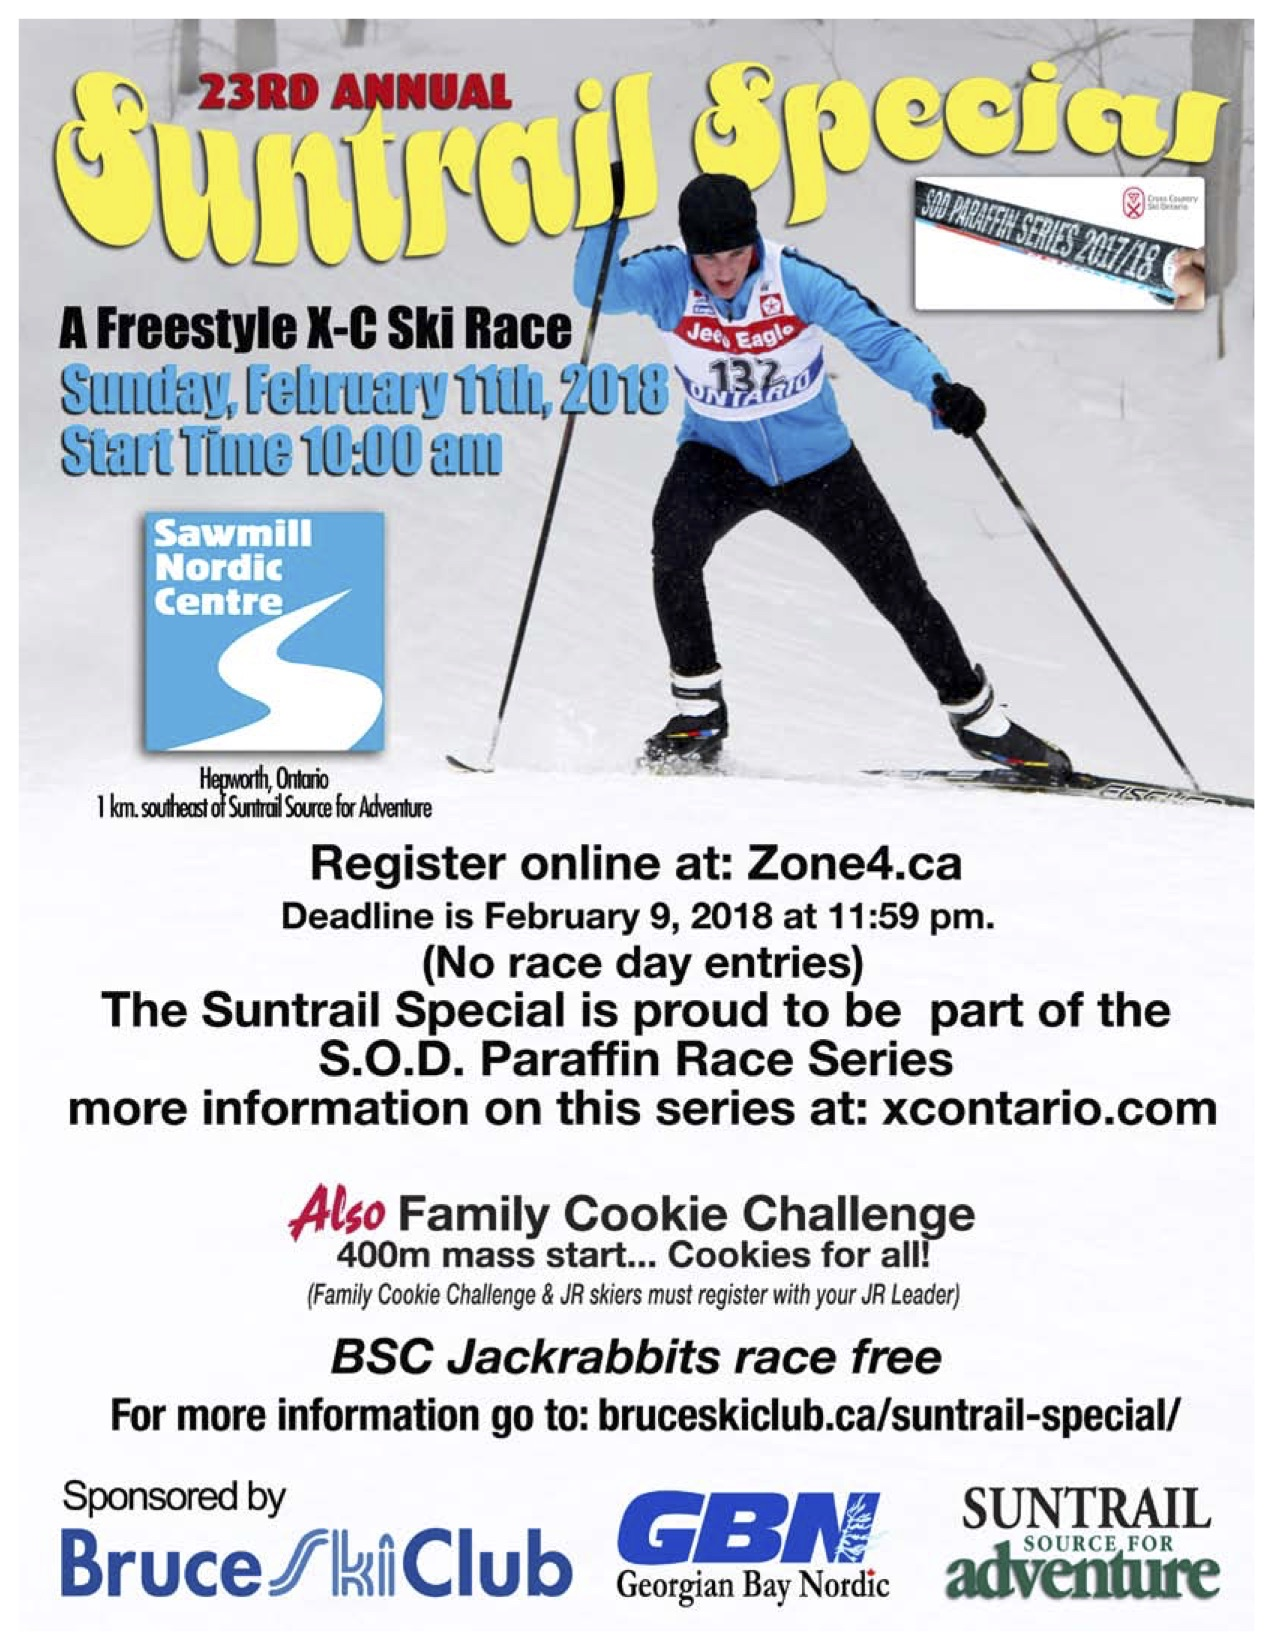 2018 Suntrail Special cross-country ski race poster